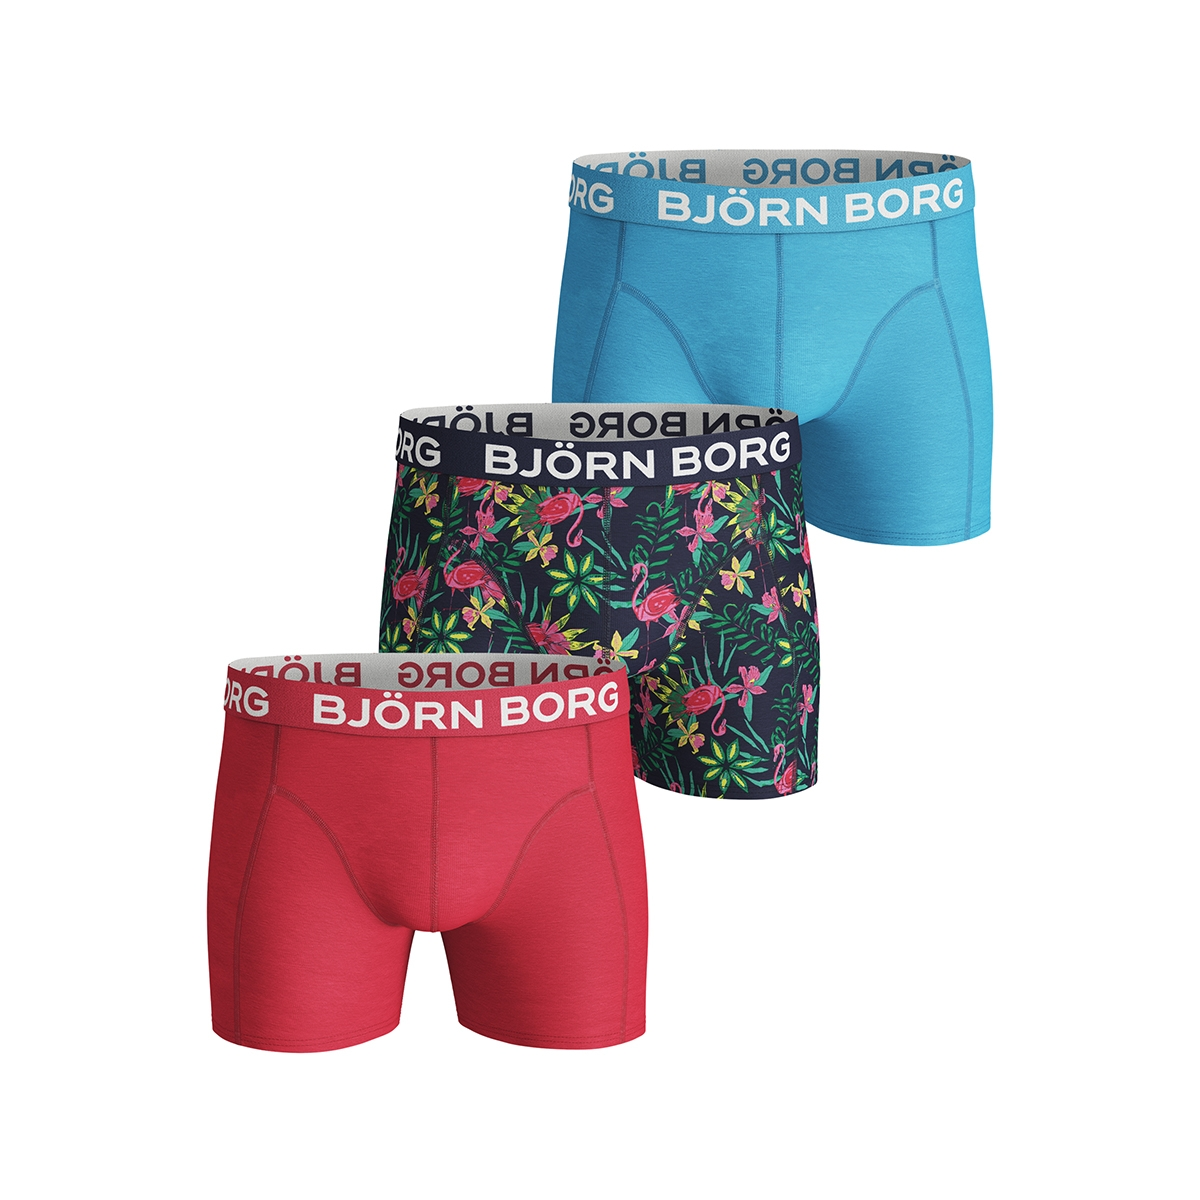 shorts bb exotic 3p 1921 1146 bjorn borg ondergoed 70011 peacoat